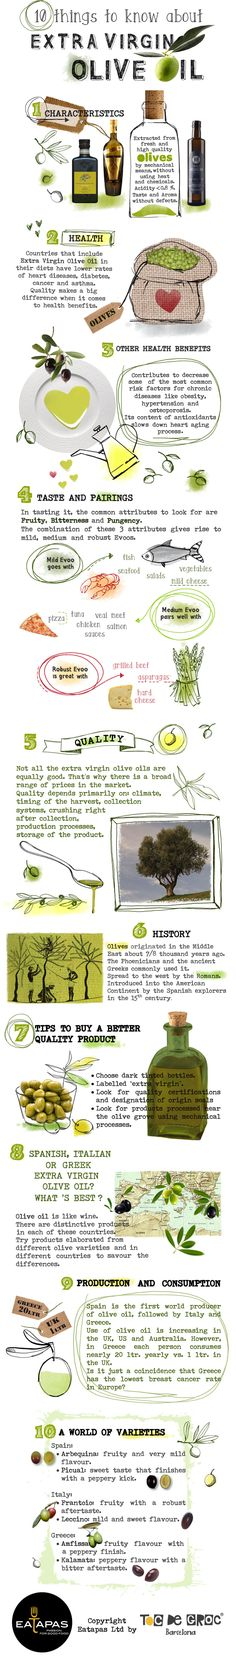 10 Things to know about extra virgin olive oil #oliveoil #aove #evoo